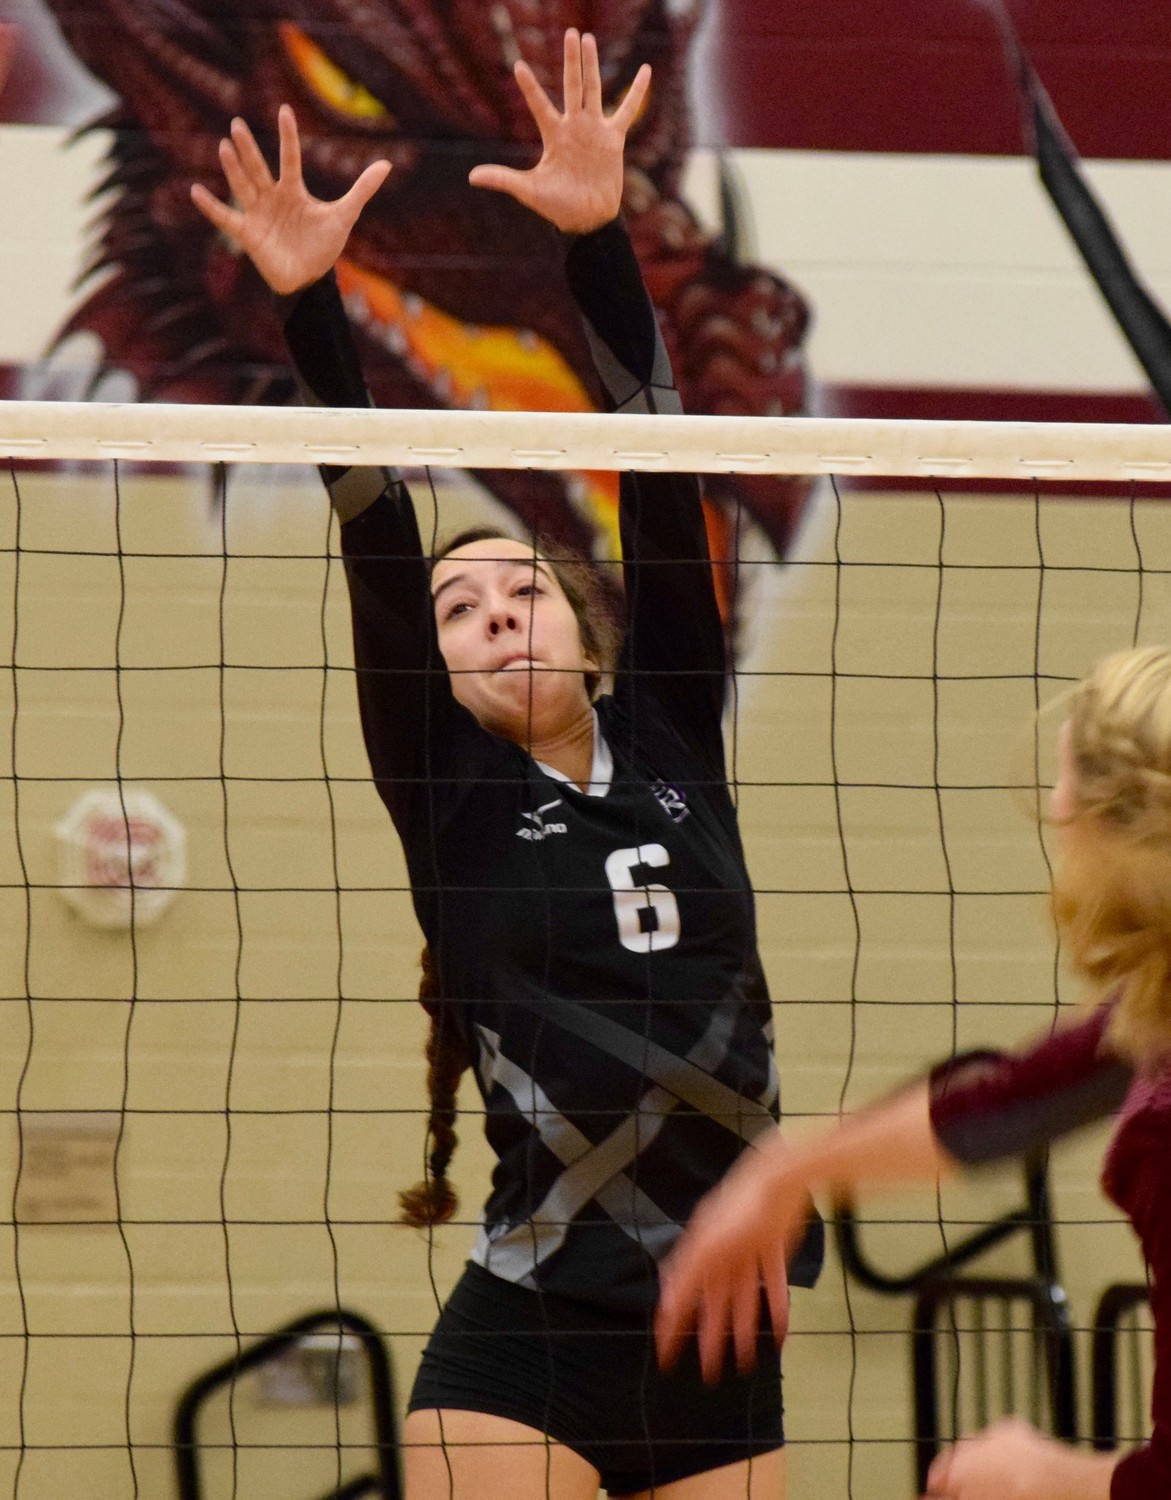 Micayla Harris and Cedar Ridge lost to Round Rock  3-0 (25-18, 25-22, 25-23) on Tuesday night.